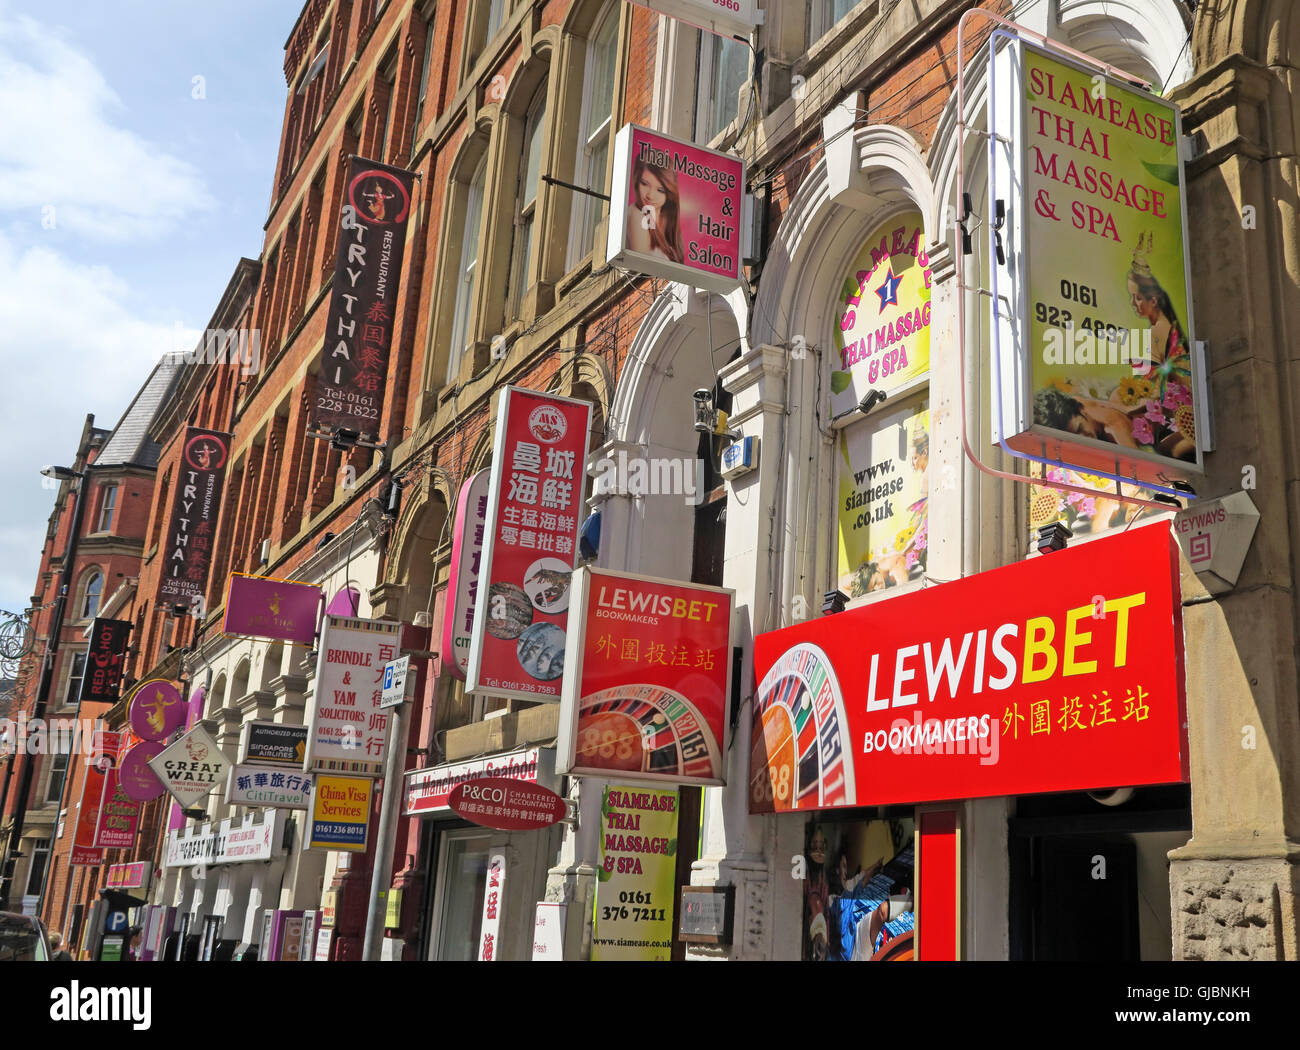 Shops in Manchester Chinatown (Lewisbet),Faulkner Street, City Centre, Manchester, North West England, UK - Stock Image